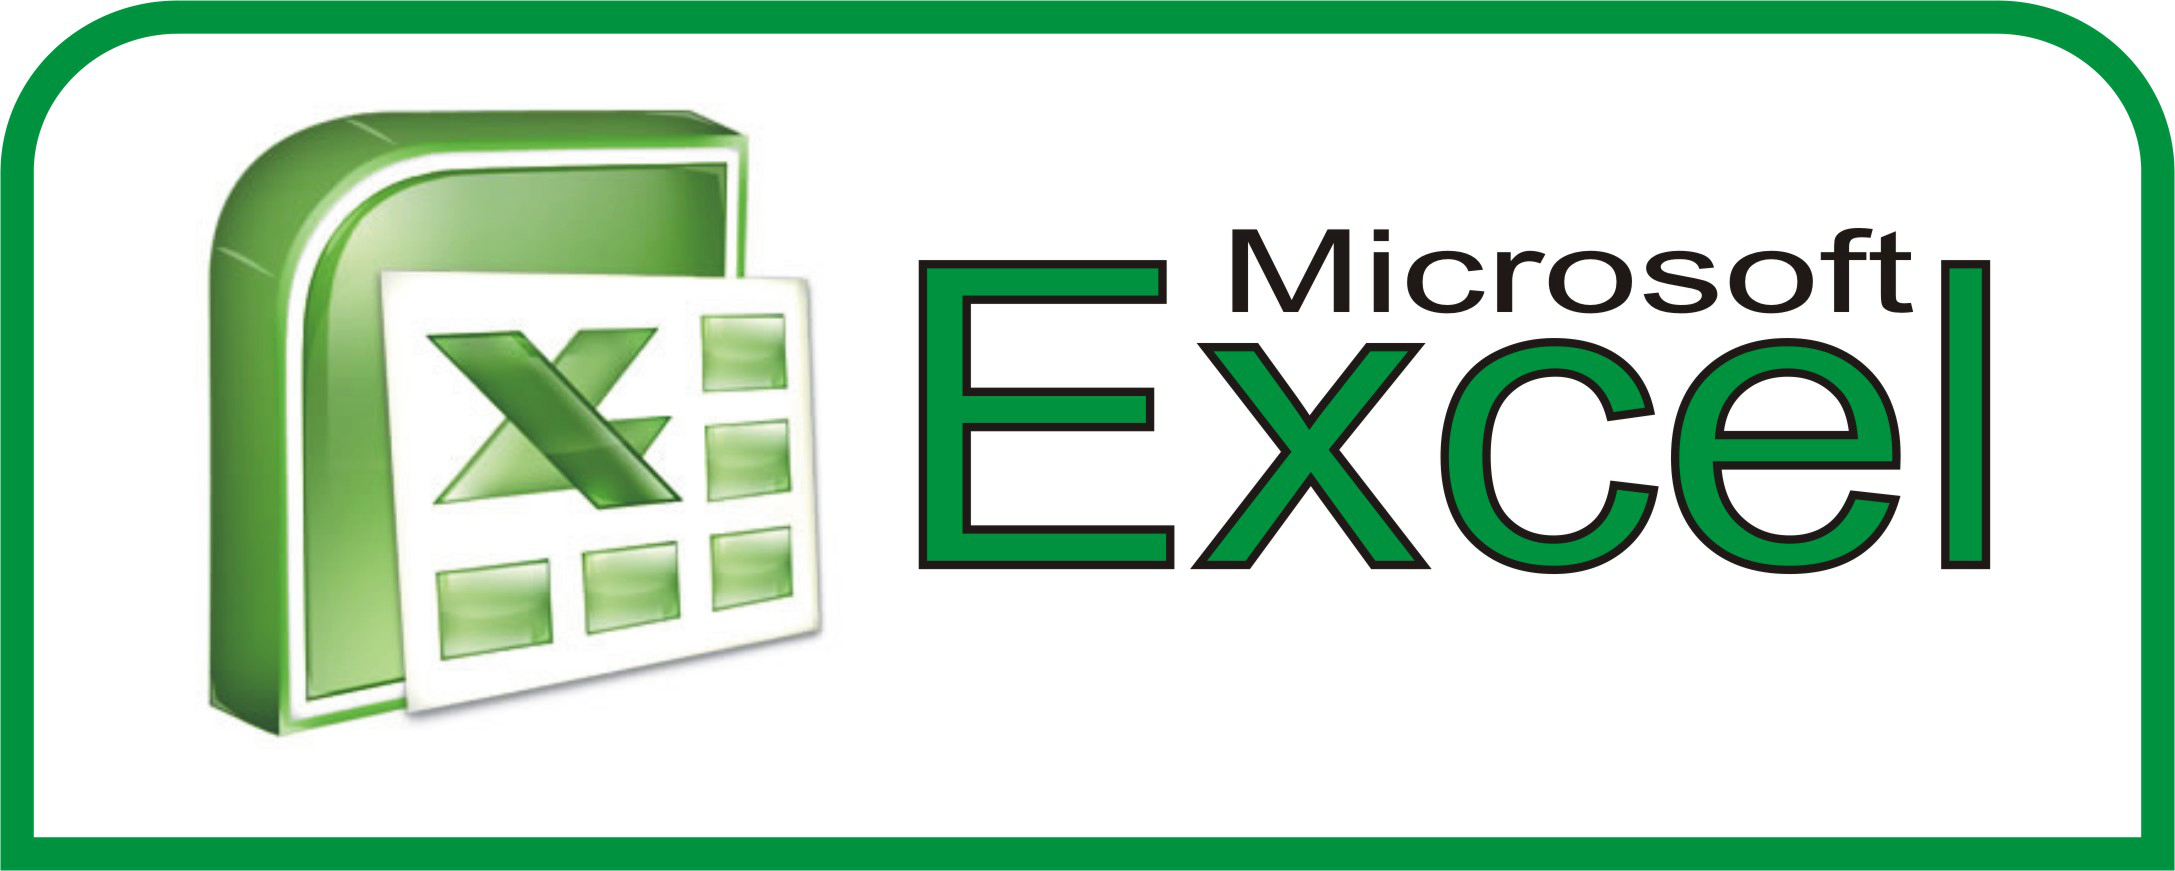 Ediblewildsus  Gorgeous  Excel Shortcuts You Probably Didnt Know About  Techdissected With Entrancing Timeline In Excel Template Besides Cpt Code List Excel Furthermore Insert A Formula In Excel With Alluring Excel If Statement With  Conditions Also Not Equal Excel Formula In Addition Format Excel Formula And How To Highlight Data In Excel As Well As Free Budget Worksheet Excel Additionally Excel Multiple If Function From Techdissectedcom With Ediblewildsus  Entrancing  Excel Shortcuts You Probably Didnt Know About  Techdissected With Alluring Timeline In Excel Template Besides Cpt Code List Excel Furthermore Insert A Formula In Excel And Gorgeous Excel If Statement With  Conditions Also Not Equal Excel Formula In Addition Format Excel Formula From Techdissectedcom